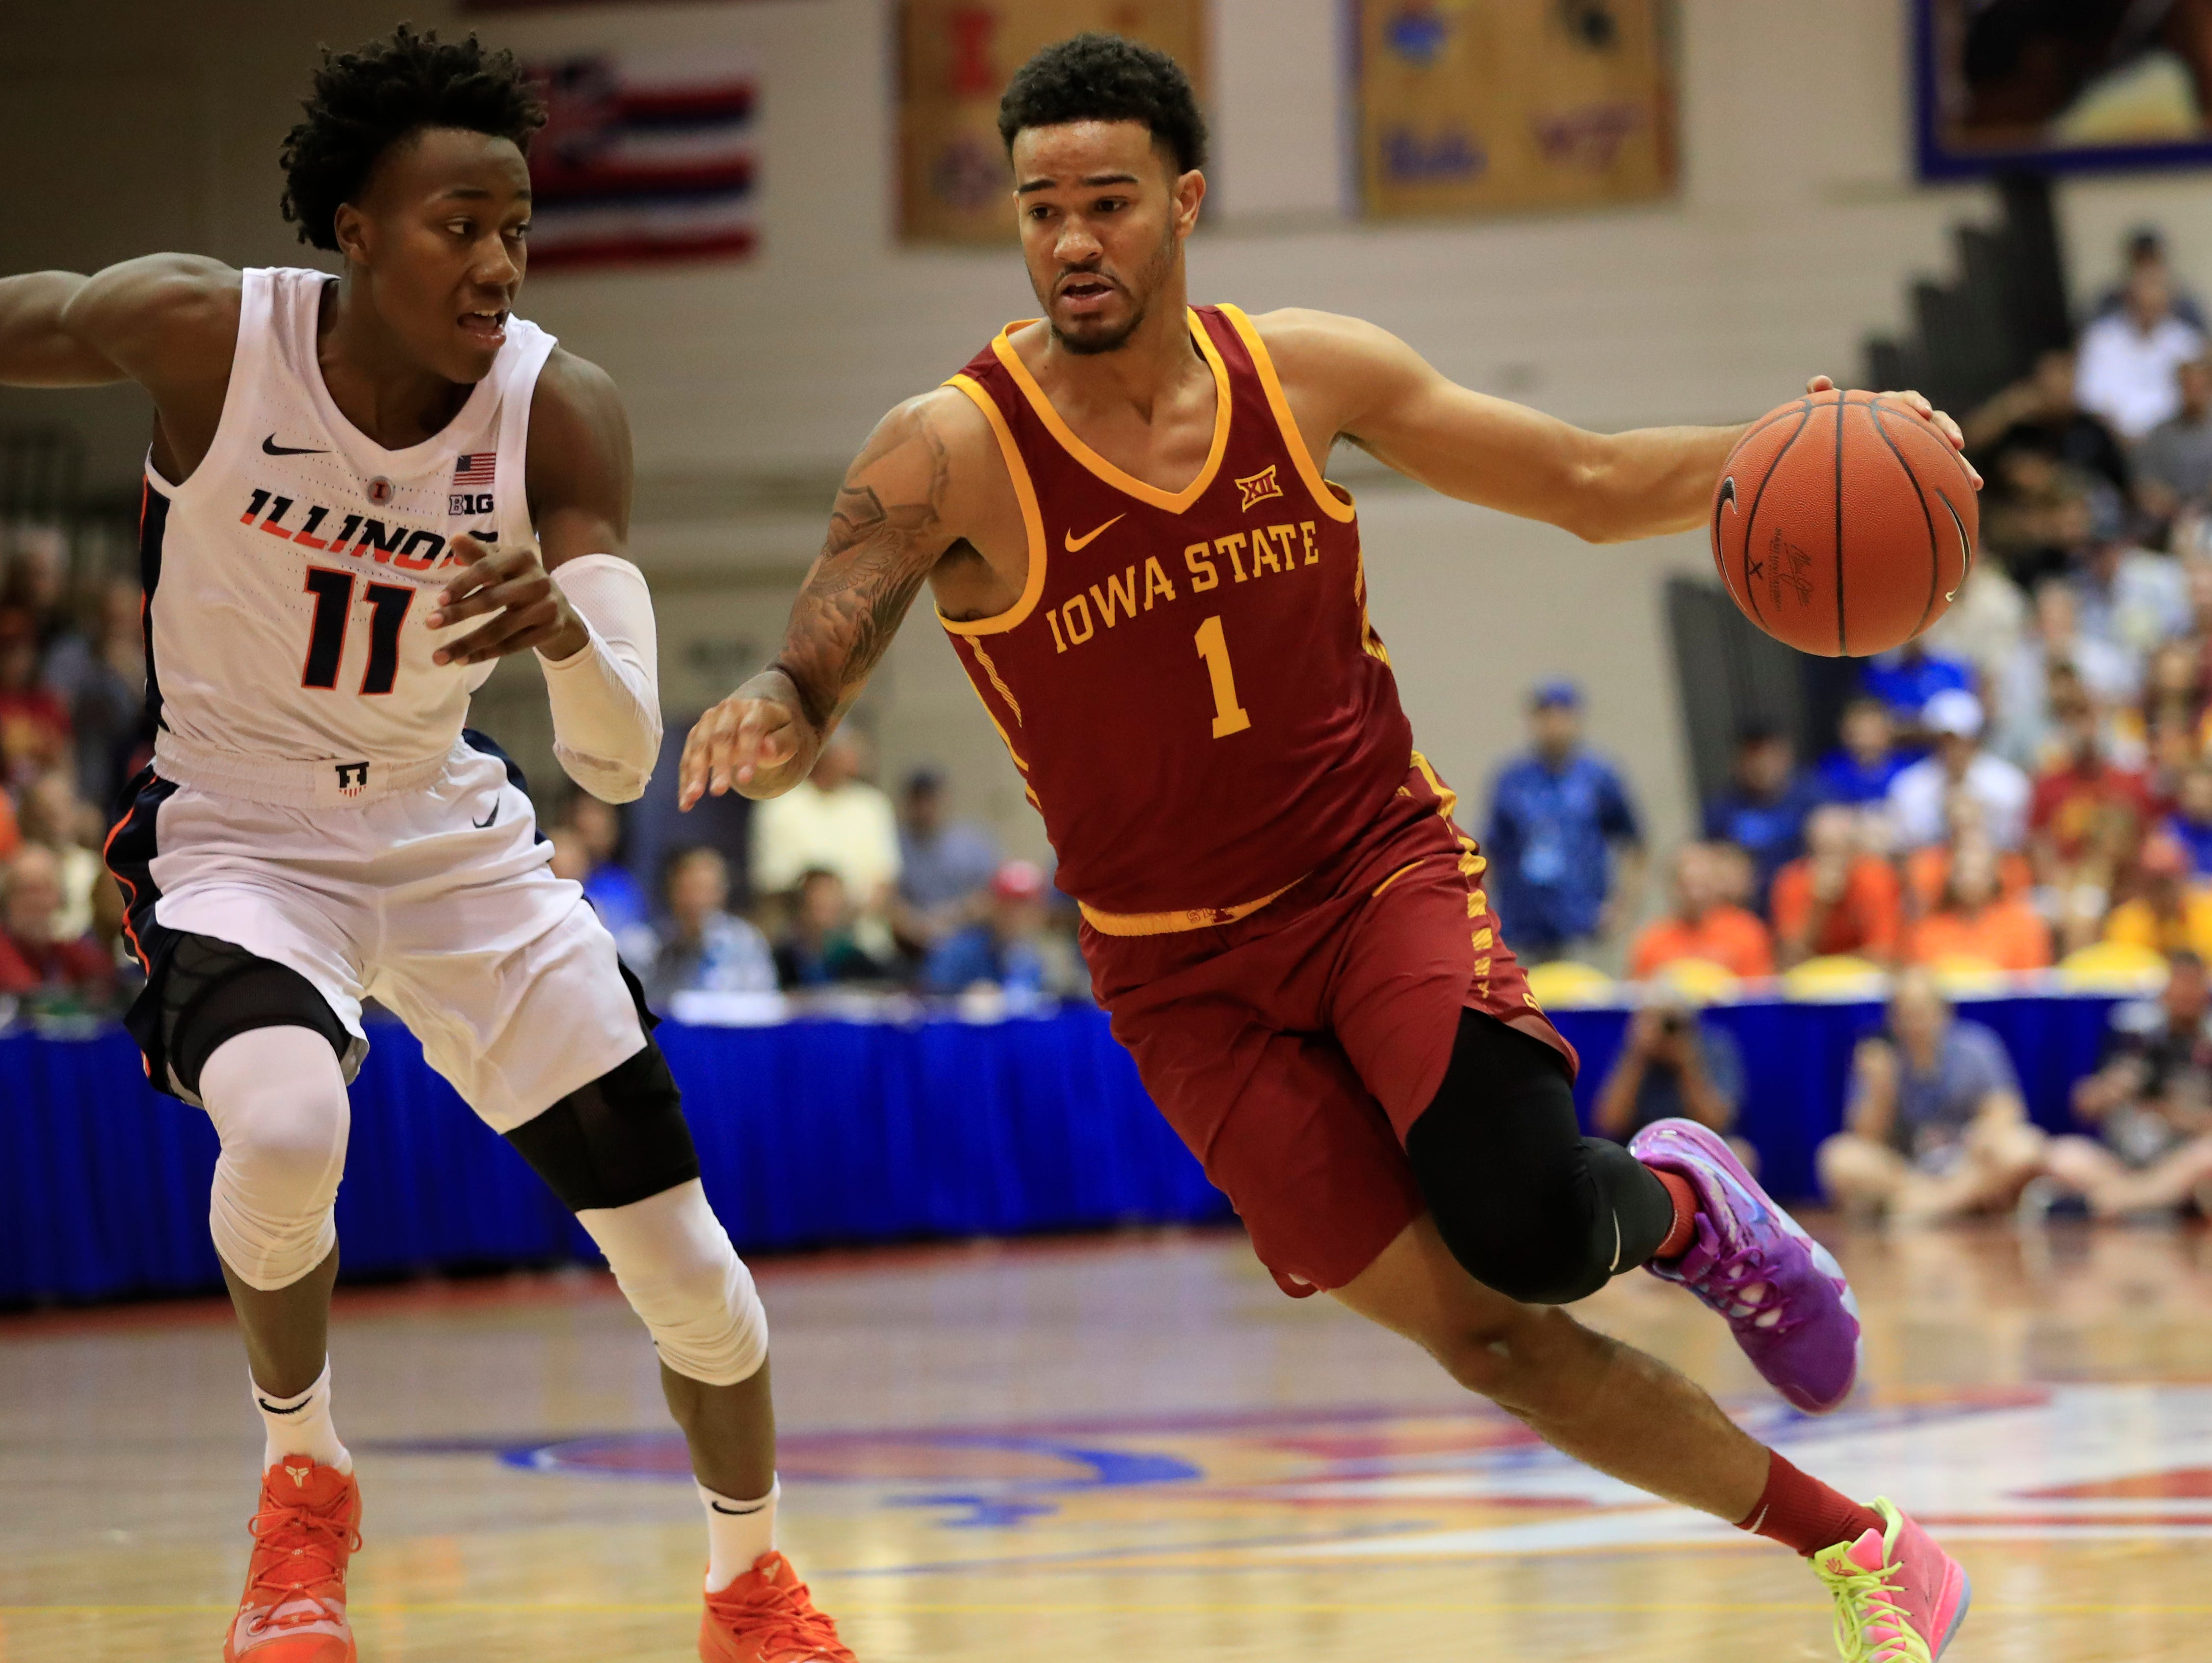 Iowa State guard Nick Weiler-Babb (1) drives past Illinois guard Ayo Dosunmu (11) during the first half of an NCAA college basketball game at the Maui Invitational, Tuesday, Nov. 20, 2018, in Lahaina, Hawaii. (AP Photo/Marco Garcia)